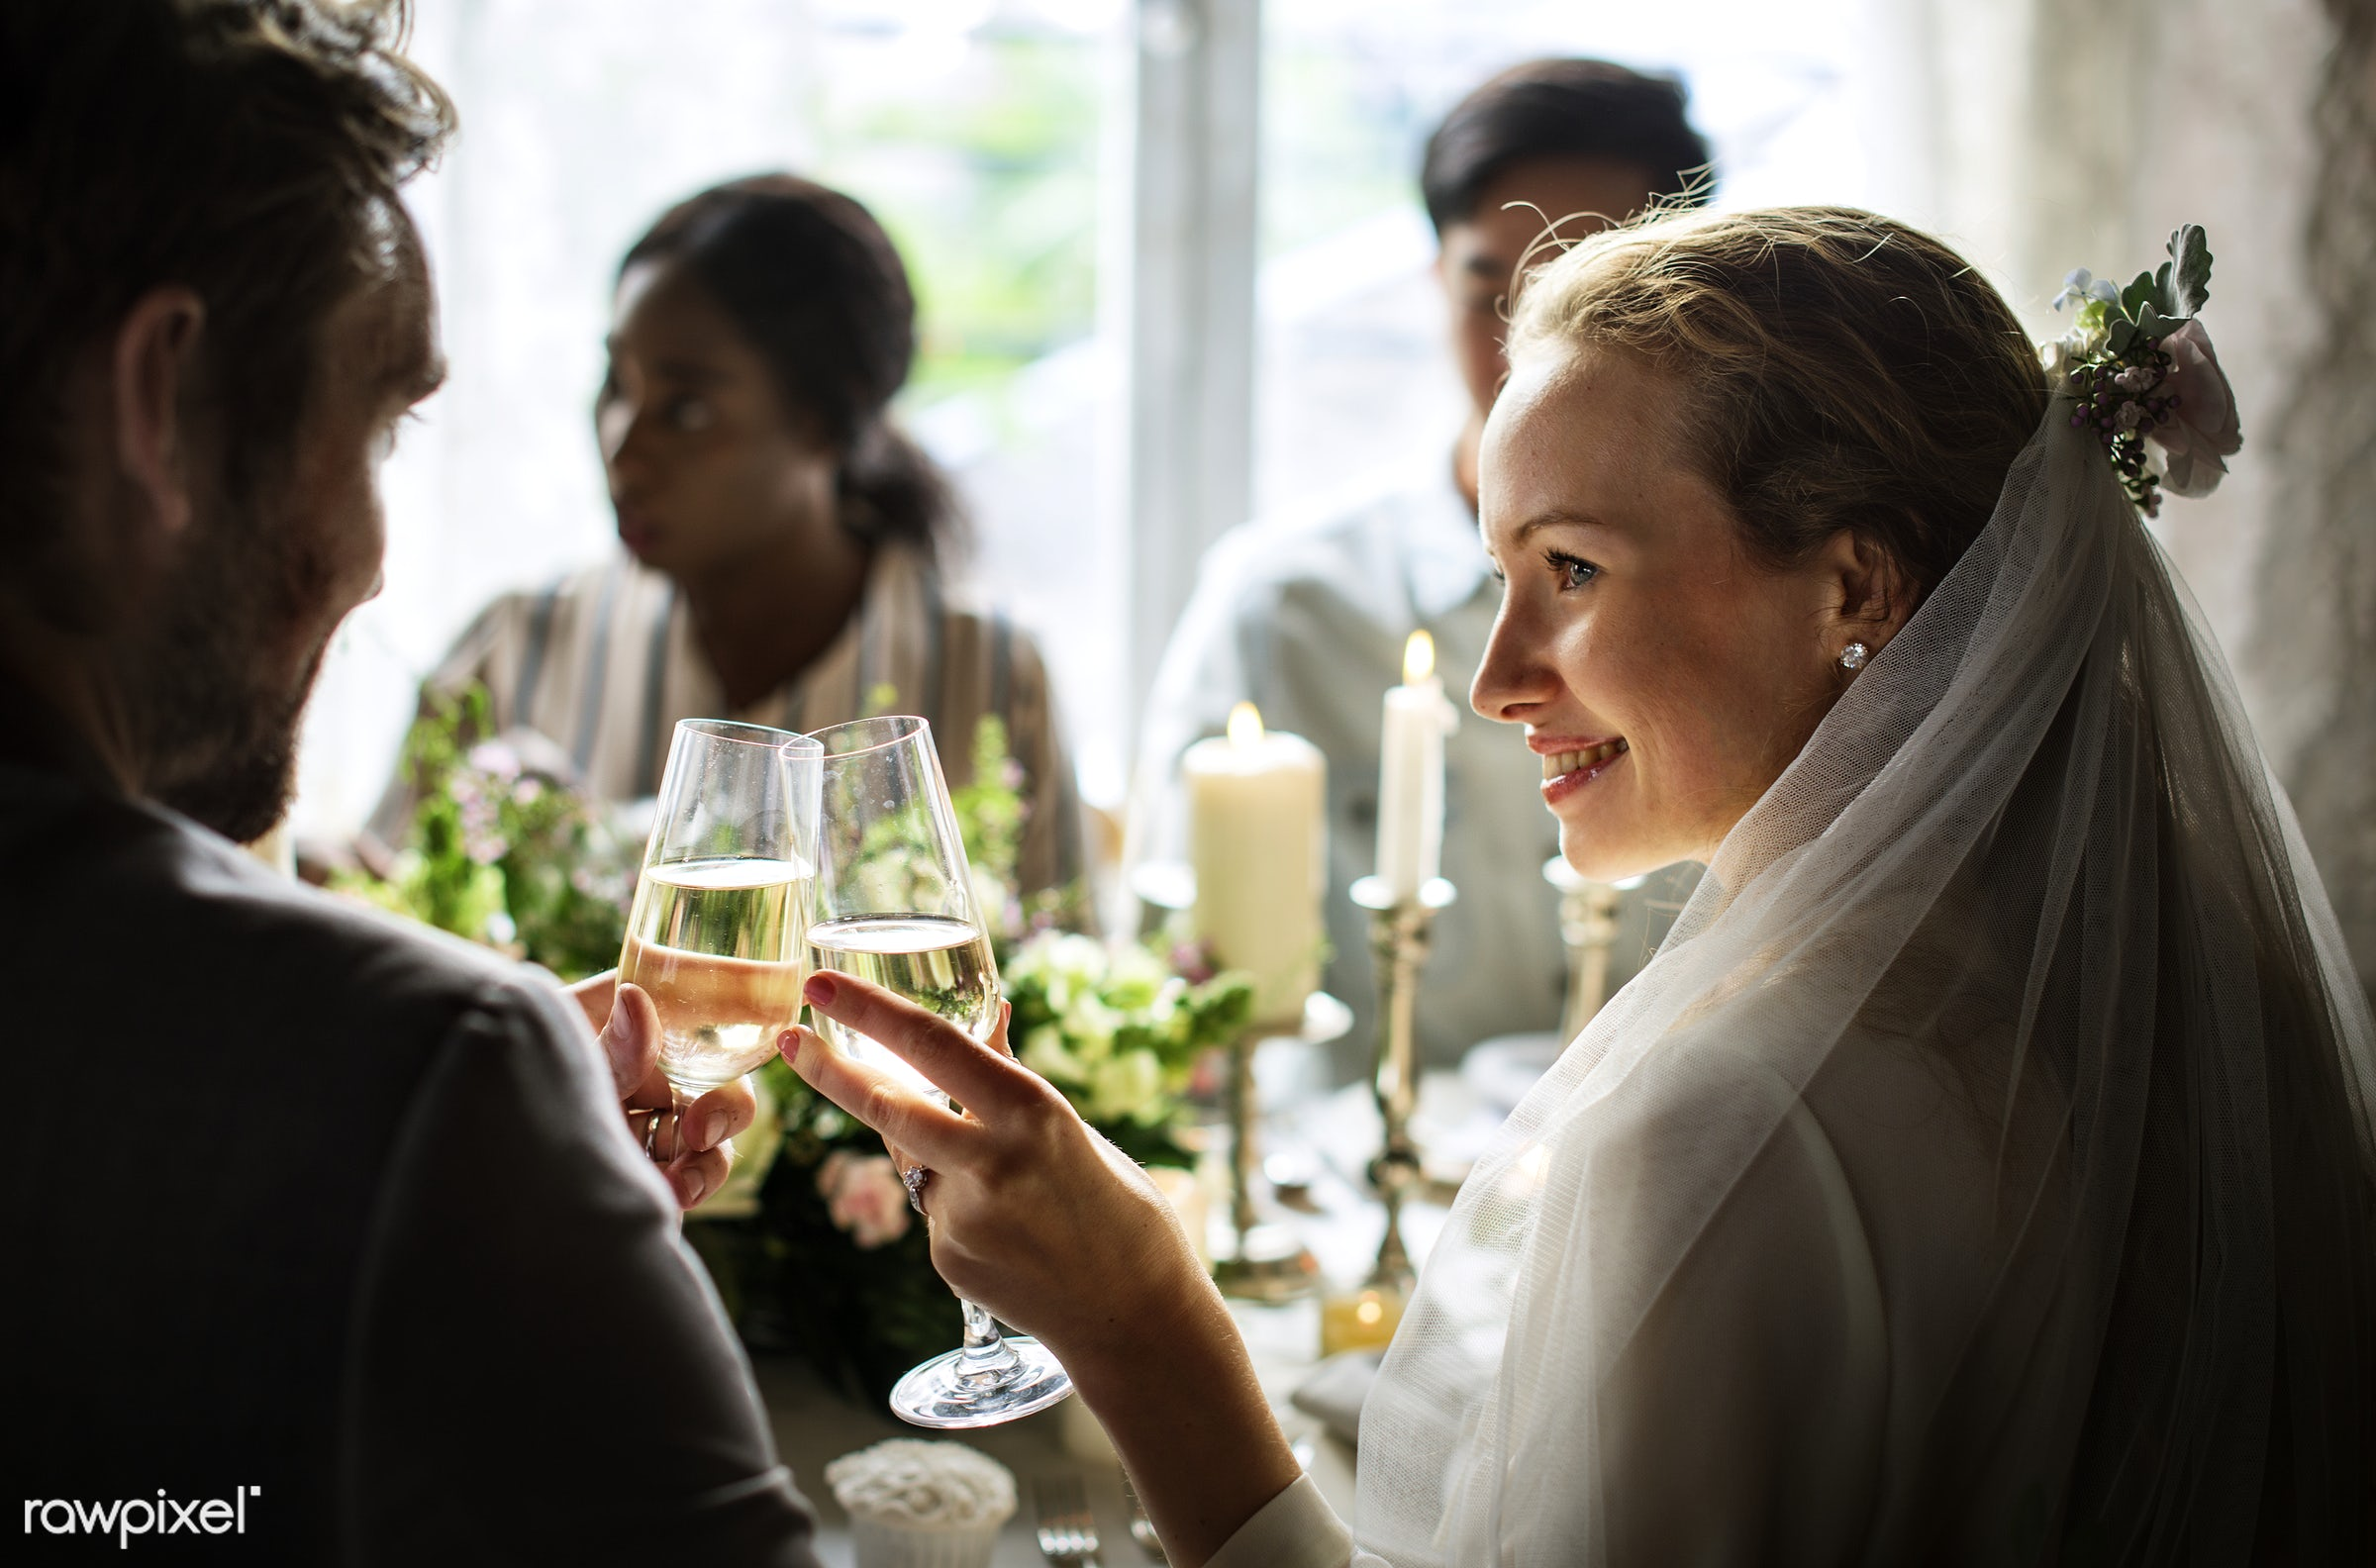 Couple at the wedding day doing a toast at reception table - alcohol, bride, celebration, champagne, couple, drinking, event...